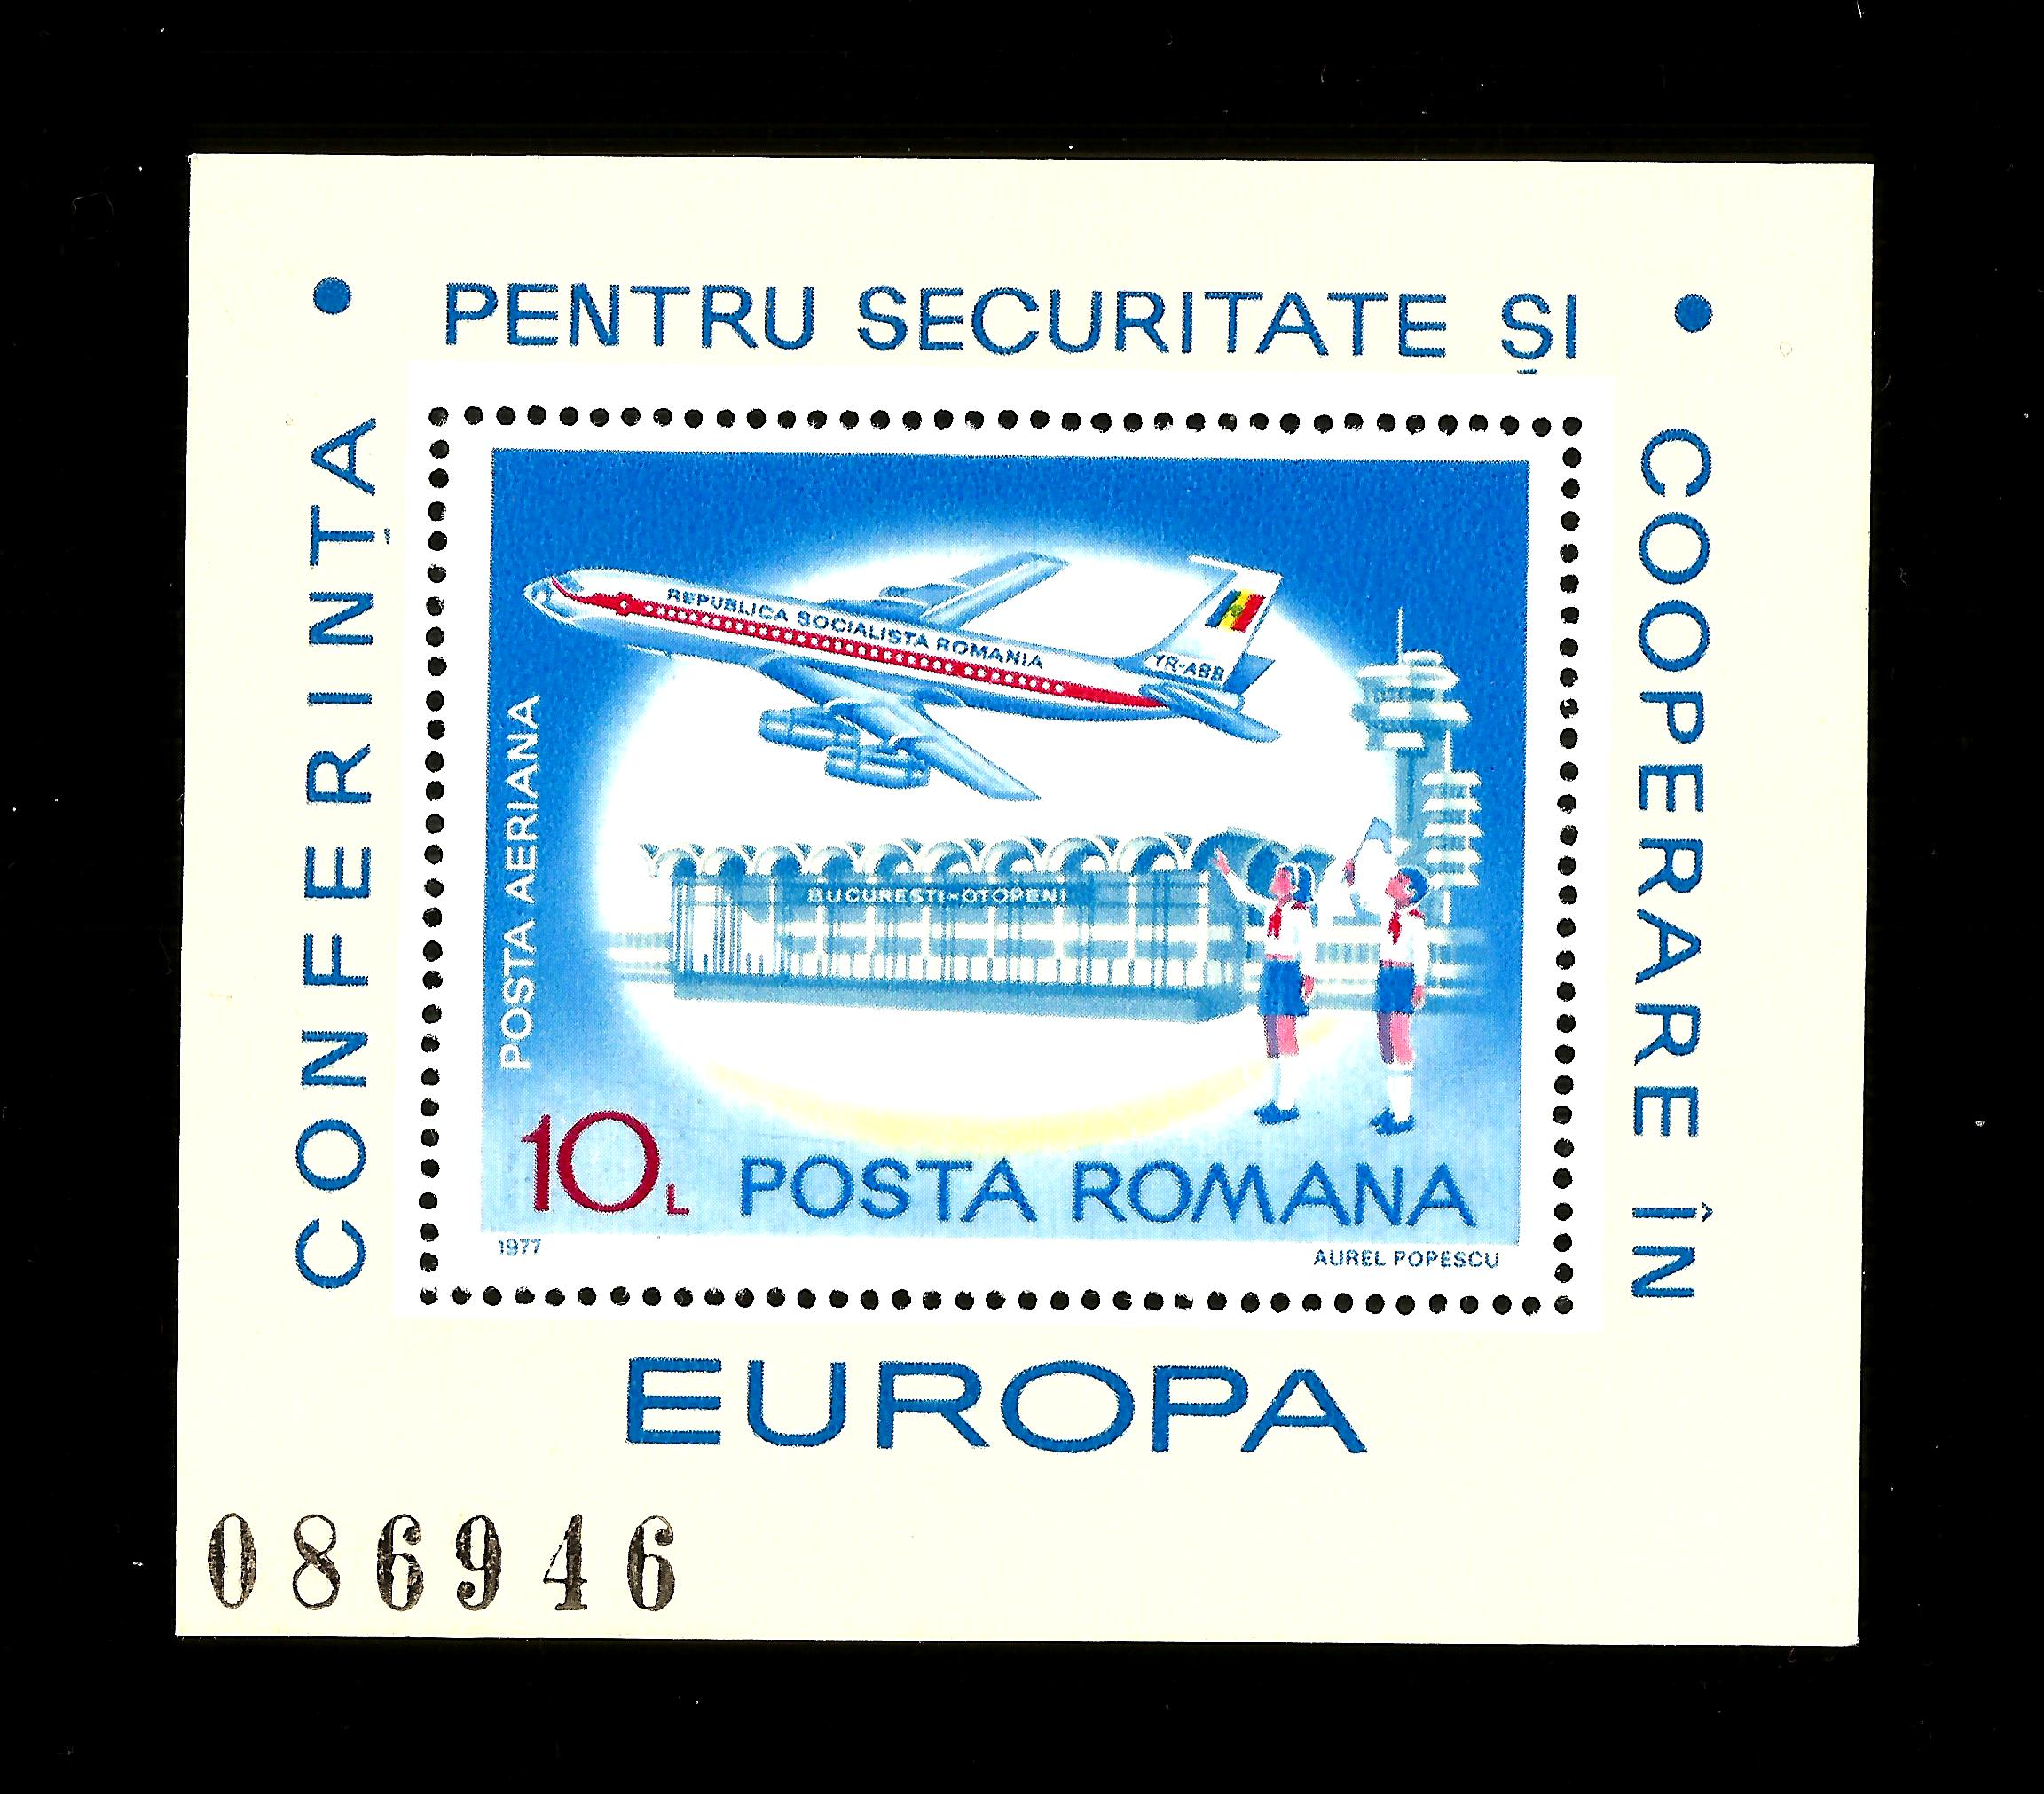 UMM MNH STAMP SHEET ROMANIA EUROPEAN SECURITY CONFERENCE 1977 SG